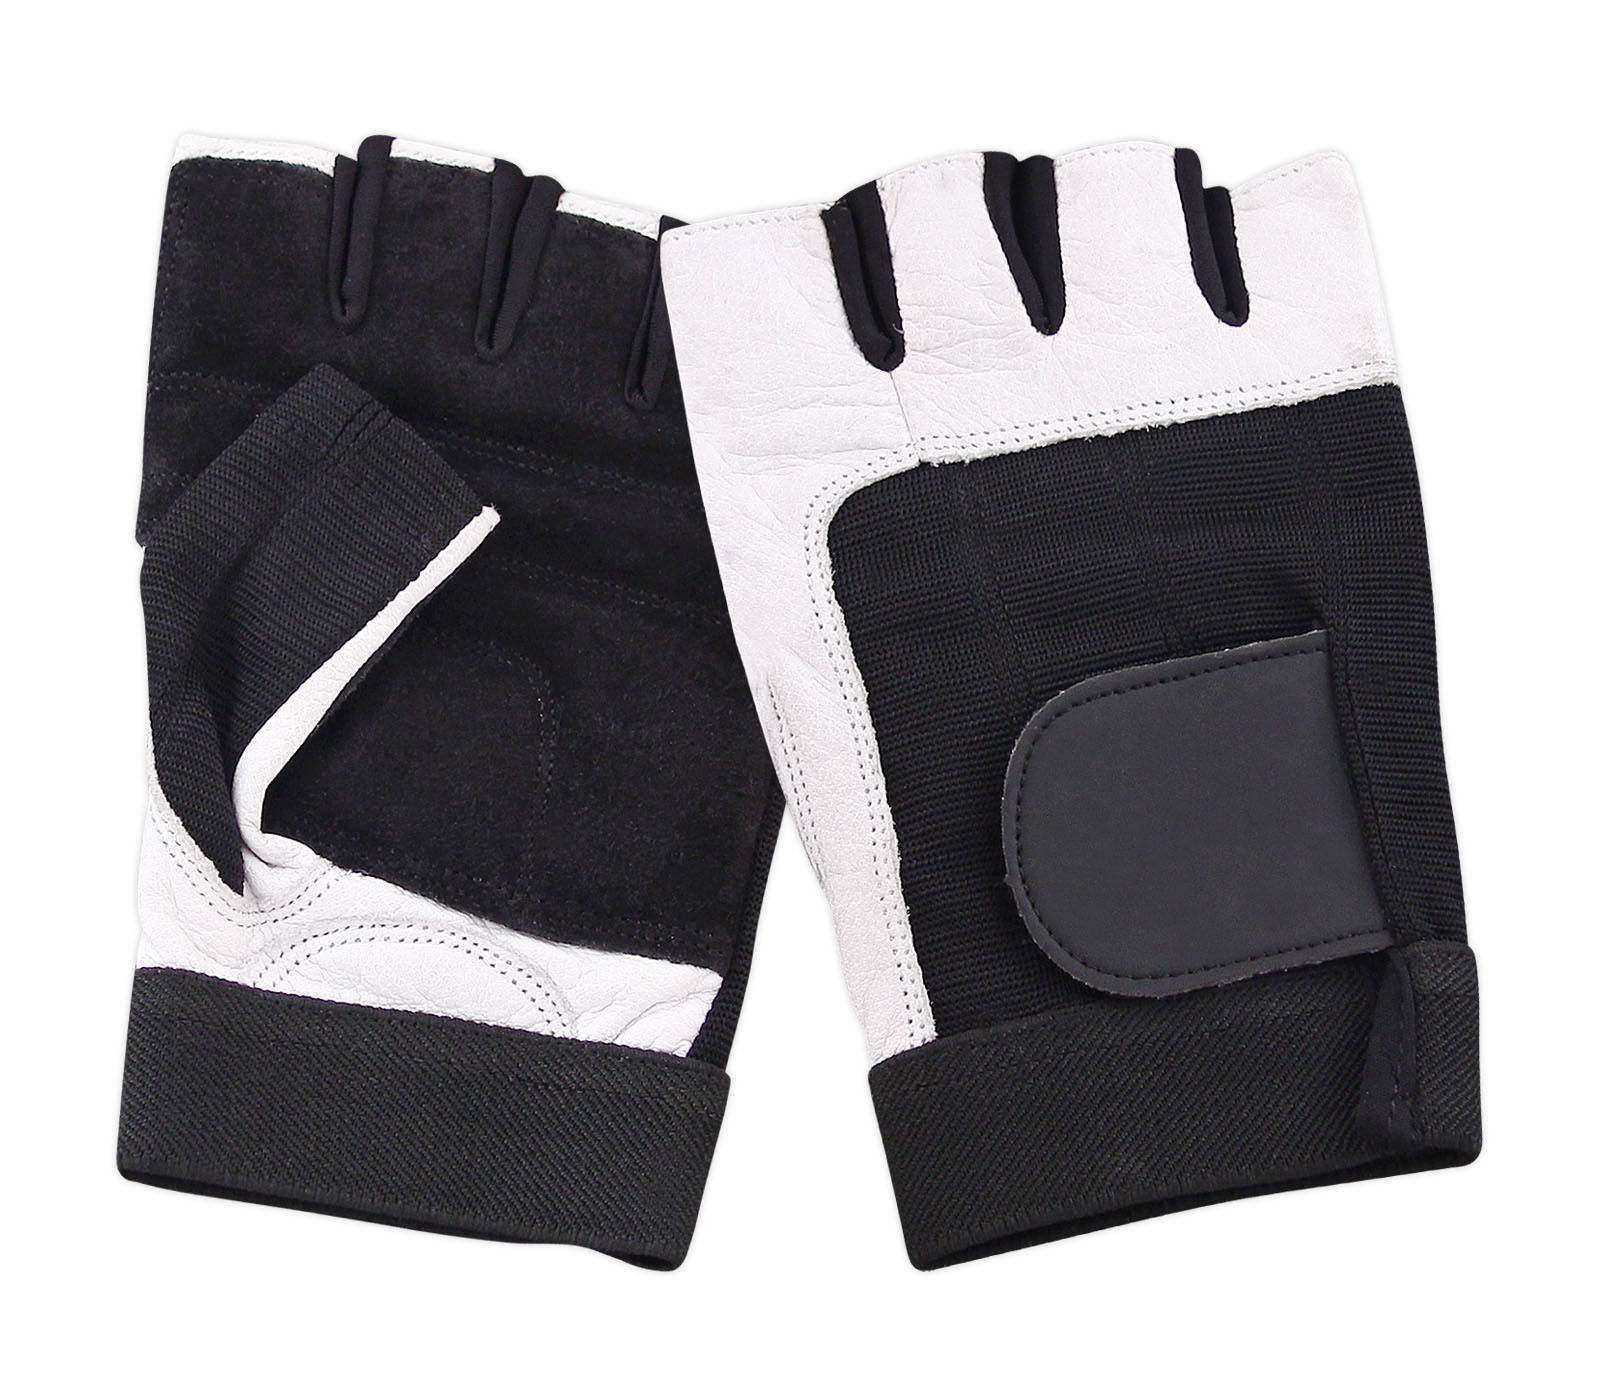 Weight Lifting Gloves Xxl: LEATHER PADDED FINGERLESS GLOVES DRIVING CYCLING GYM BIKER